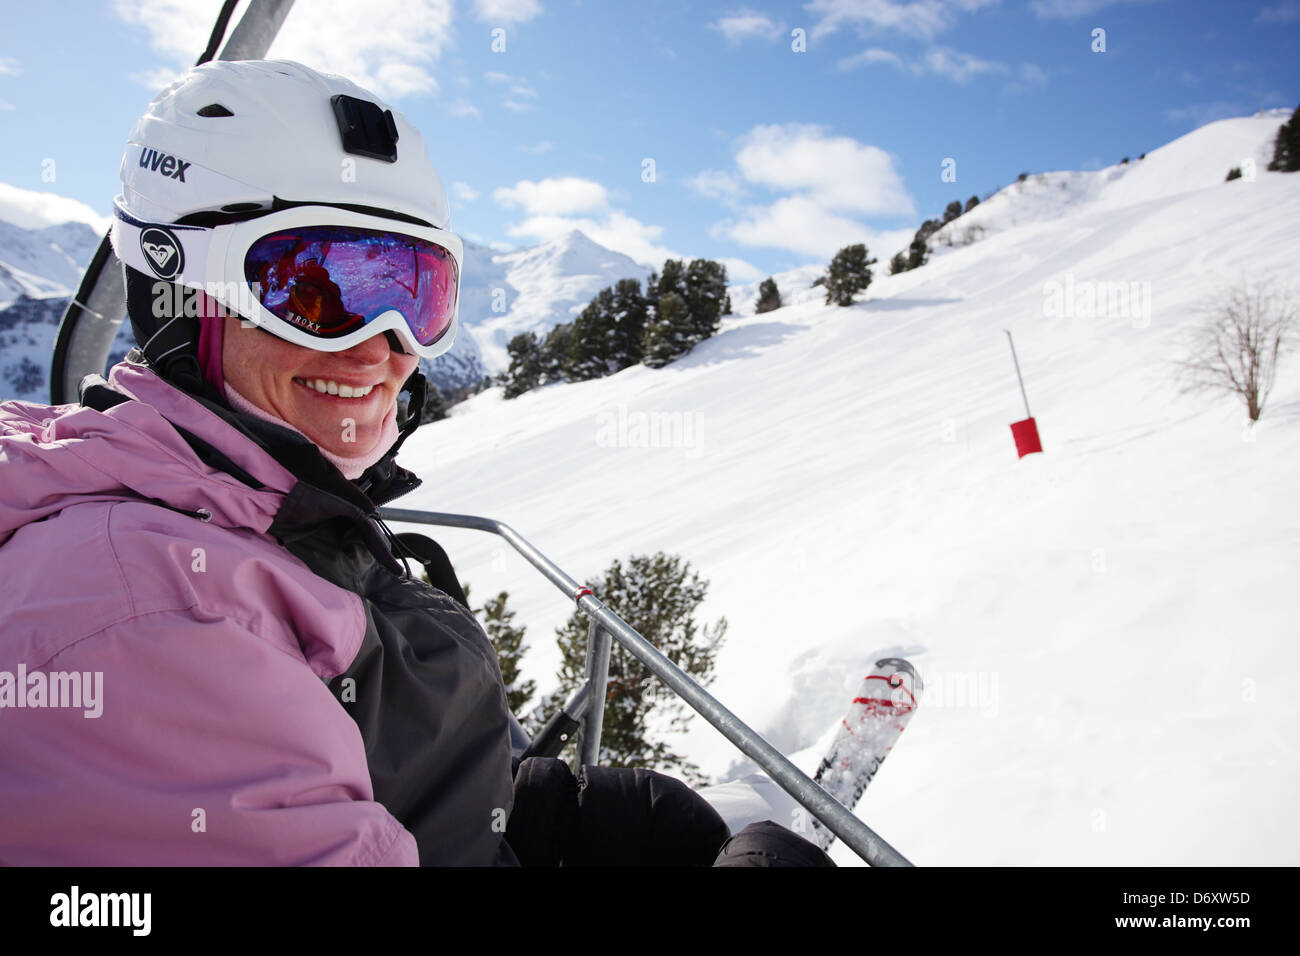 Smiling girl on a chairlift. Skiing in Meribel, France - Stock Image